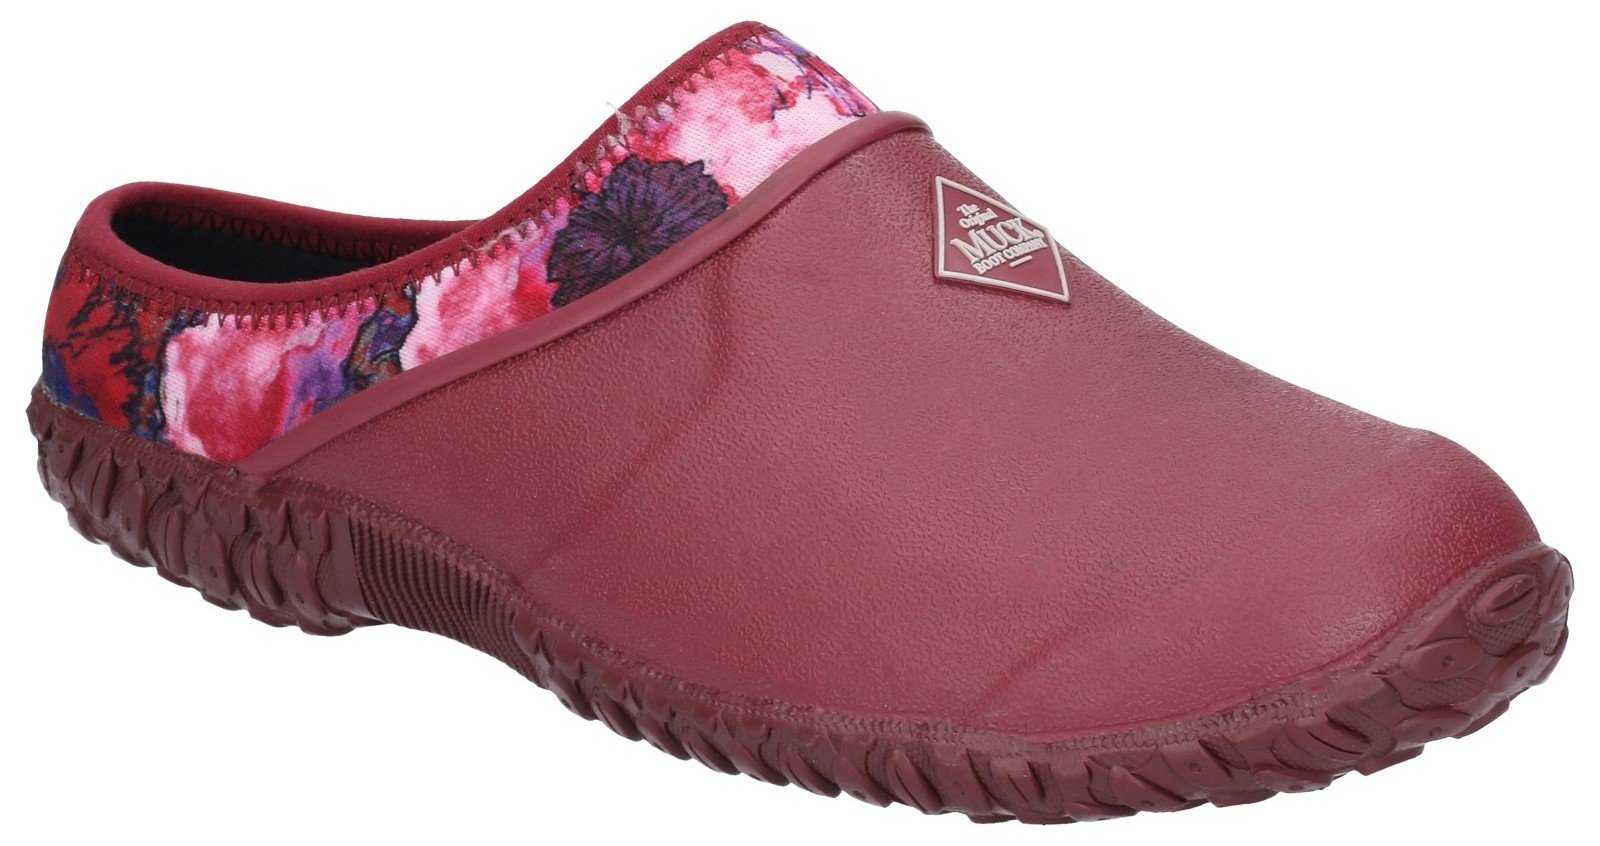 Muck Boots Women's Muckster II Slip On Clog Various Colours 28900 - Red 3